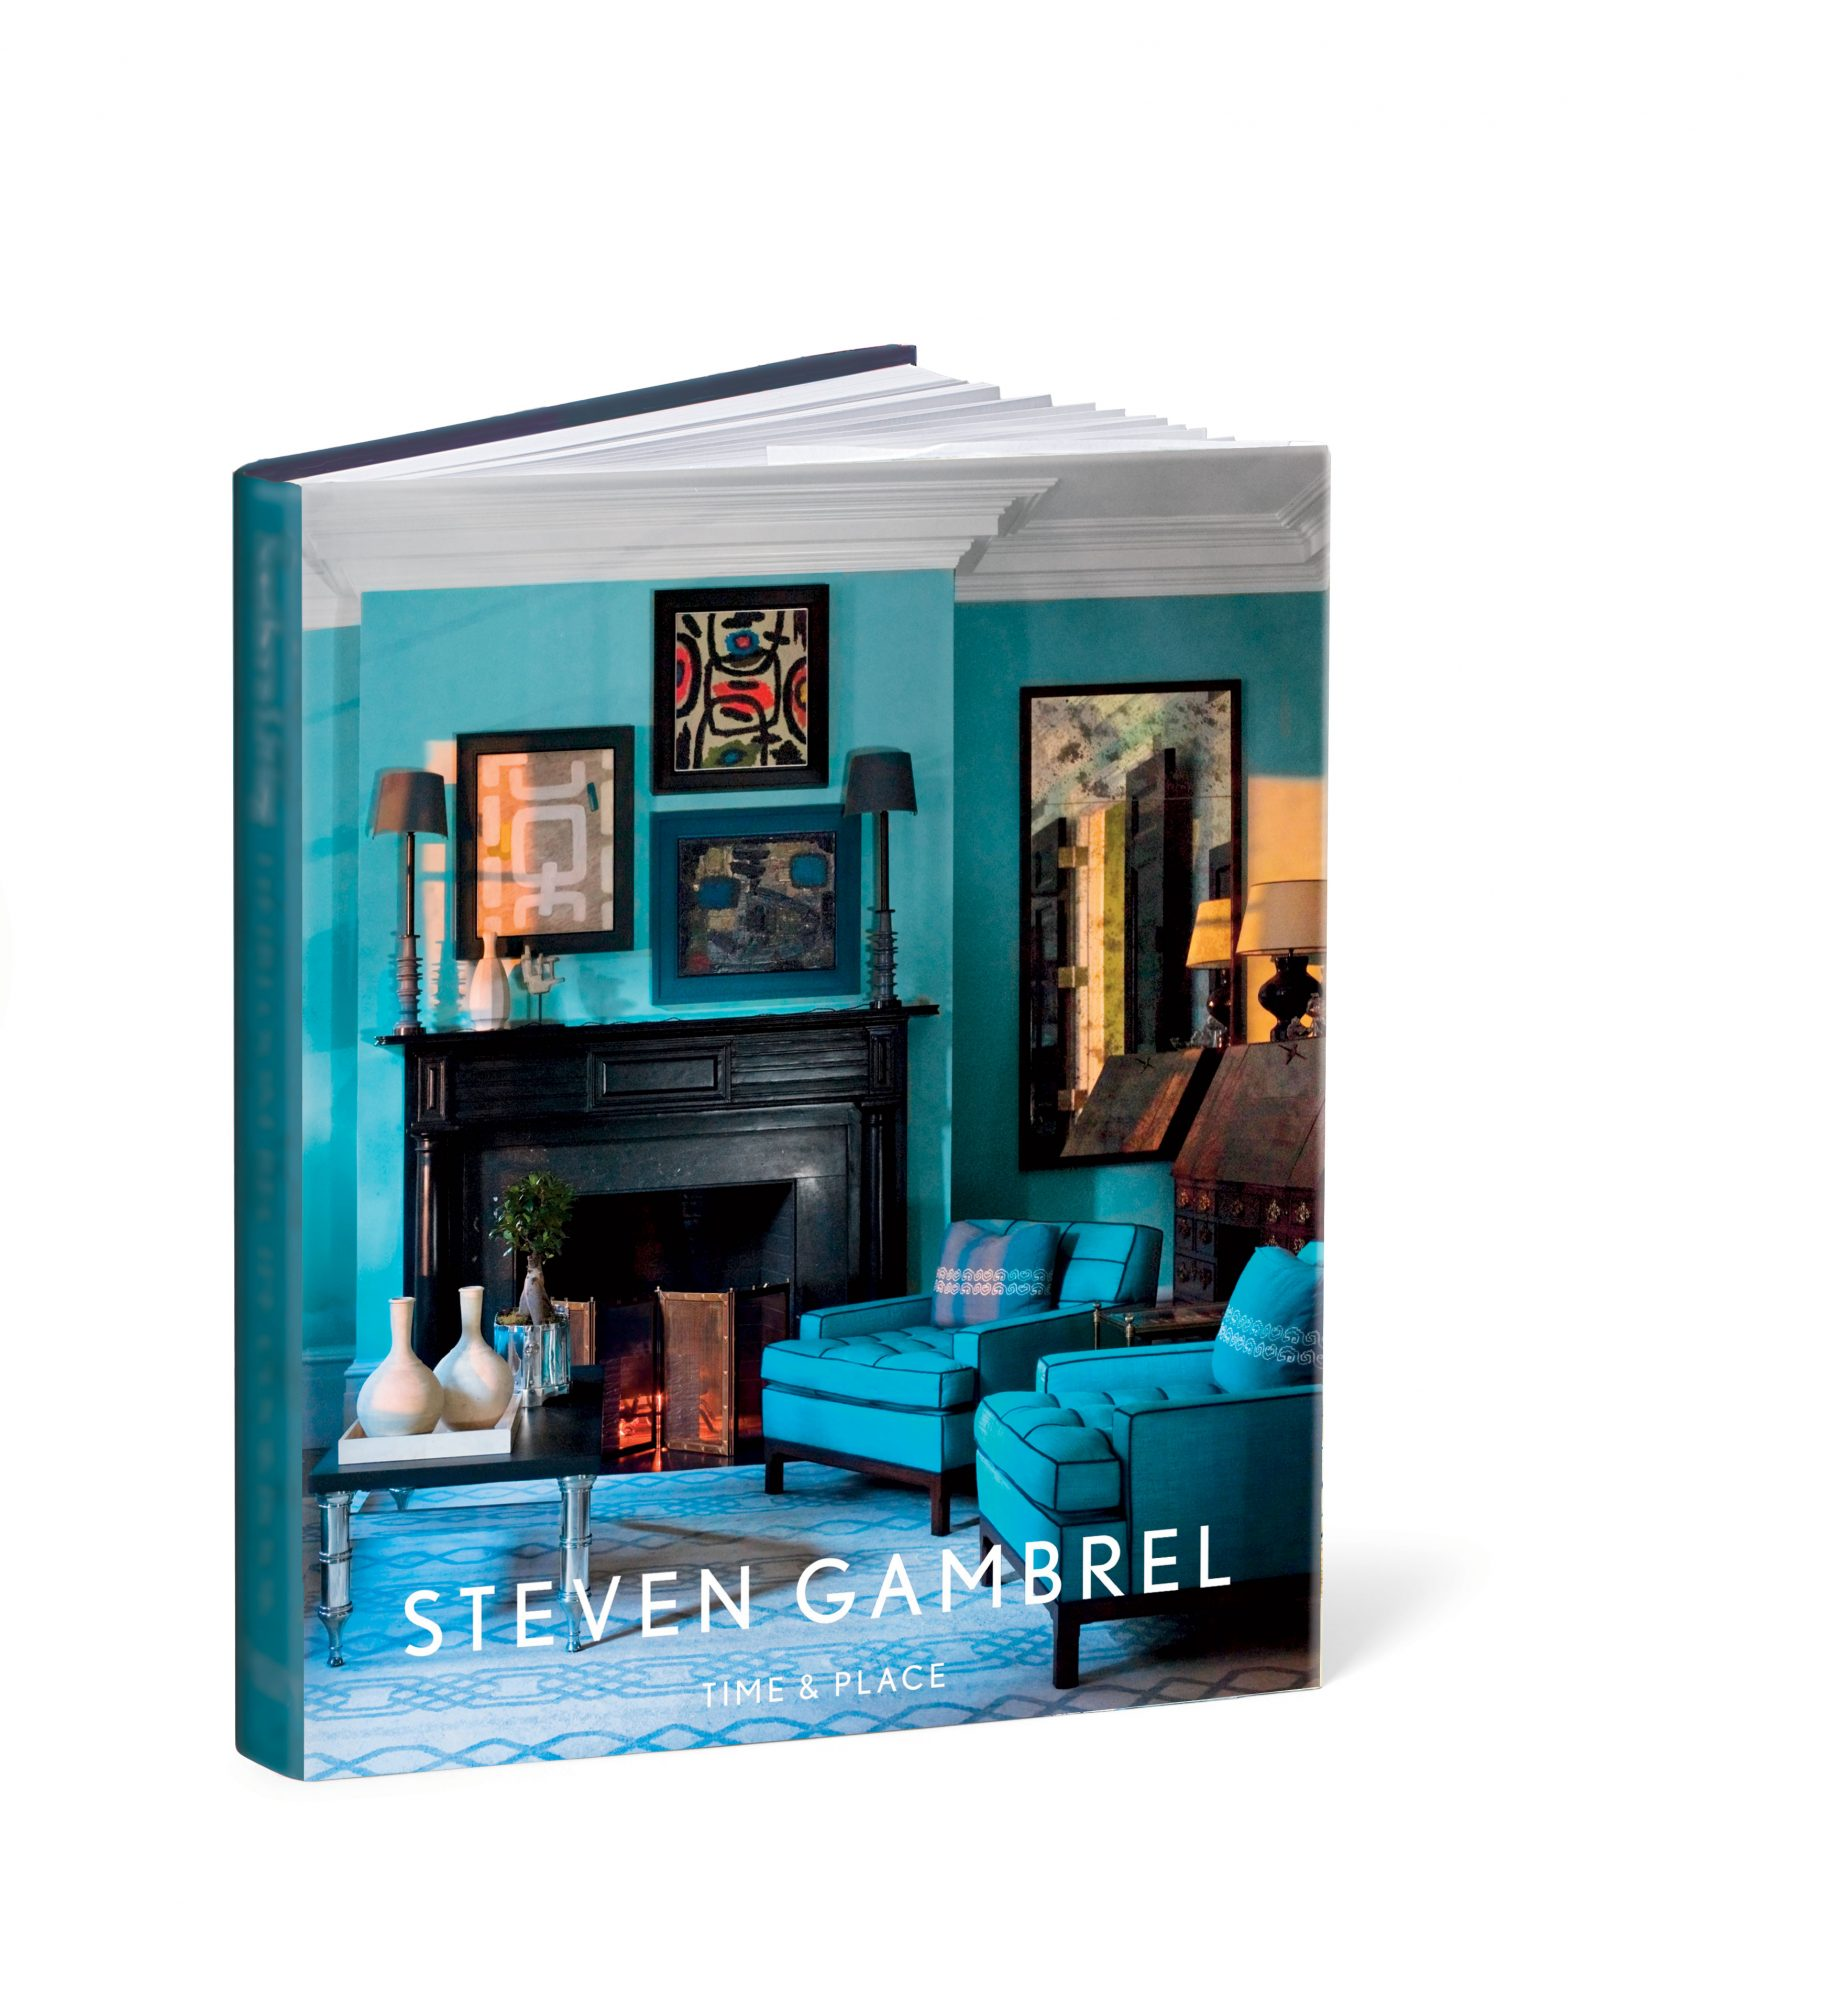 Steven Gambrel: Time & Place